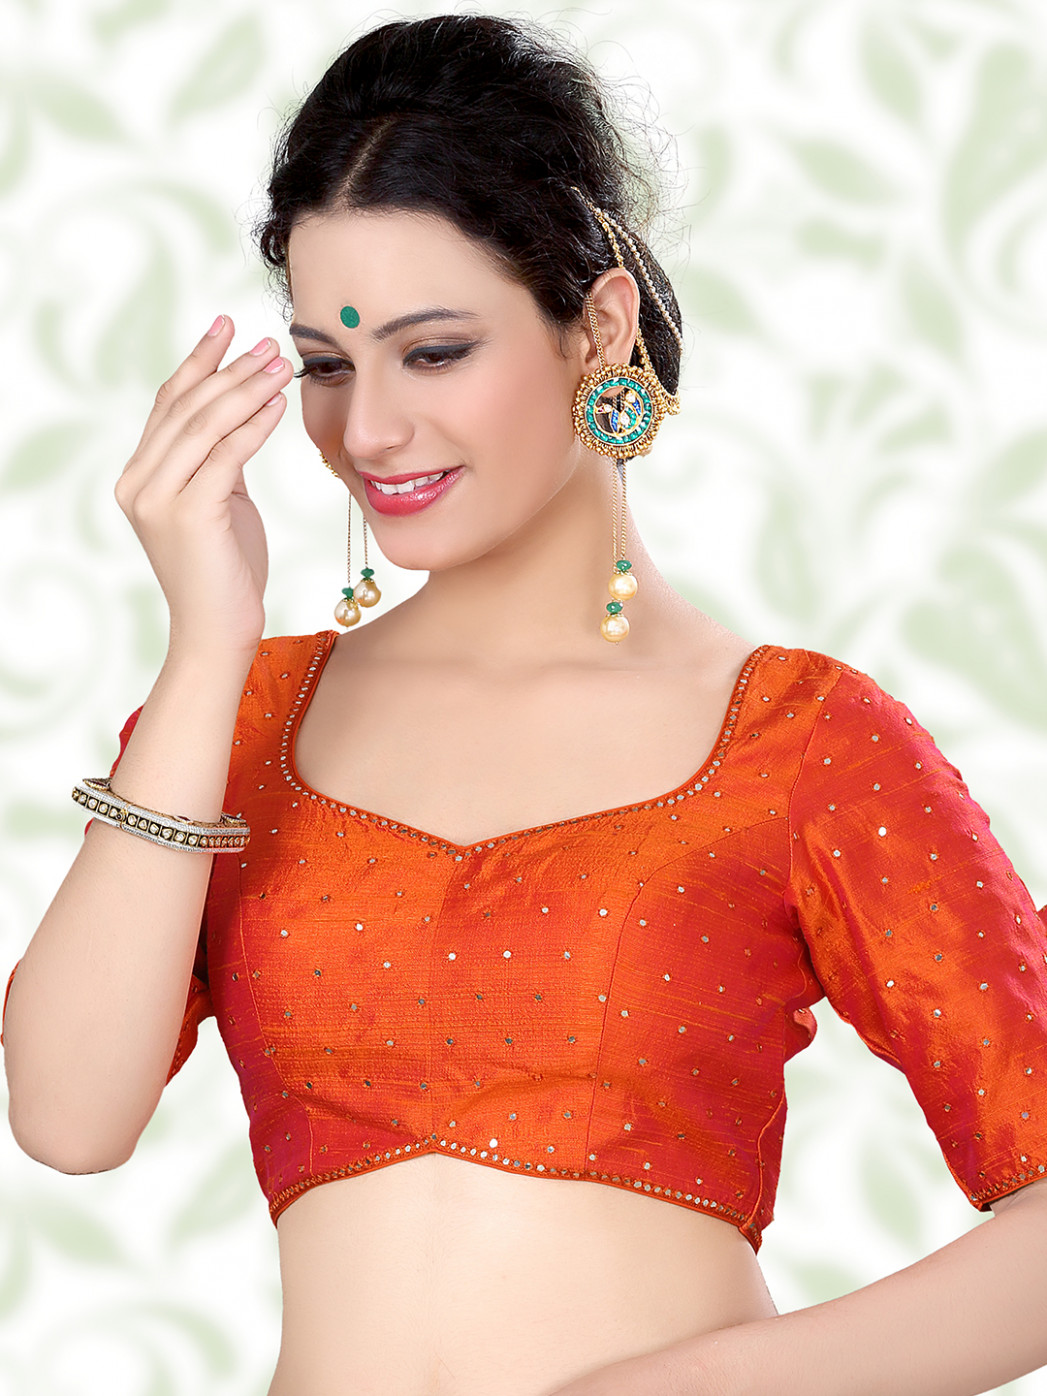 Readymade Blouse - Buy Designer Saree Blouses Online From